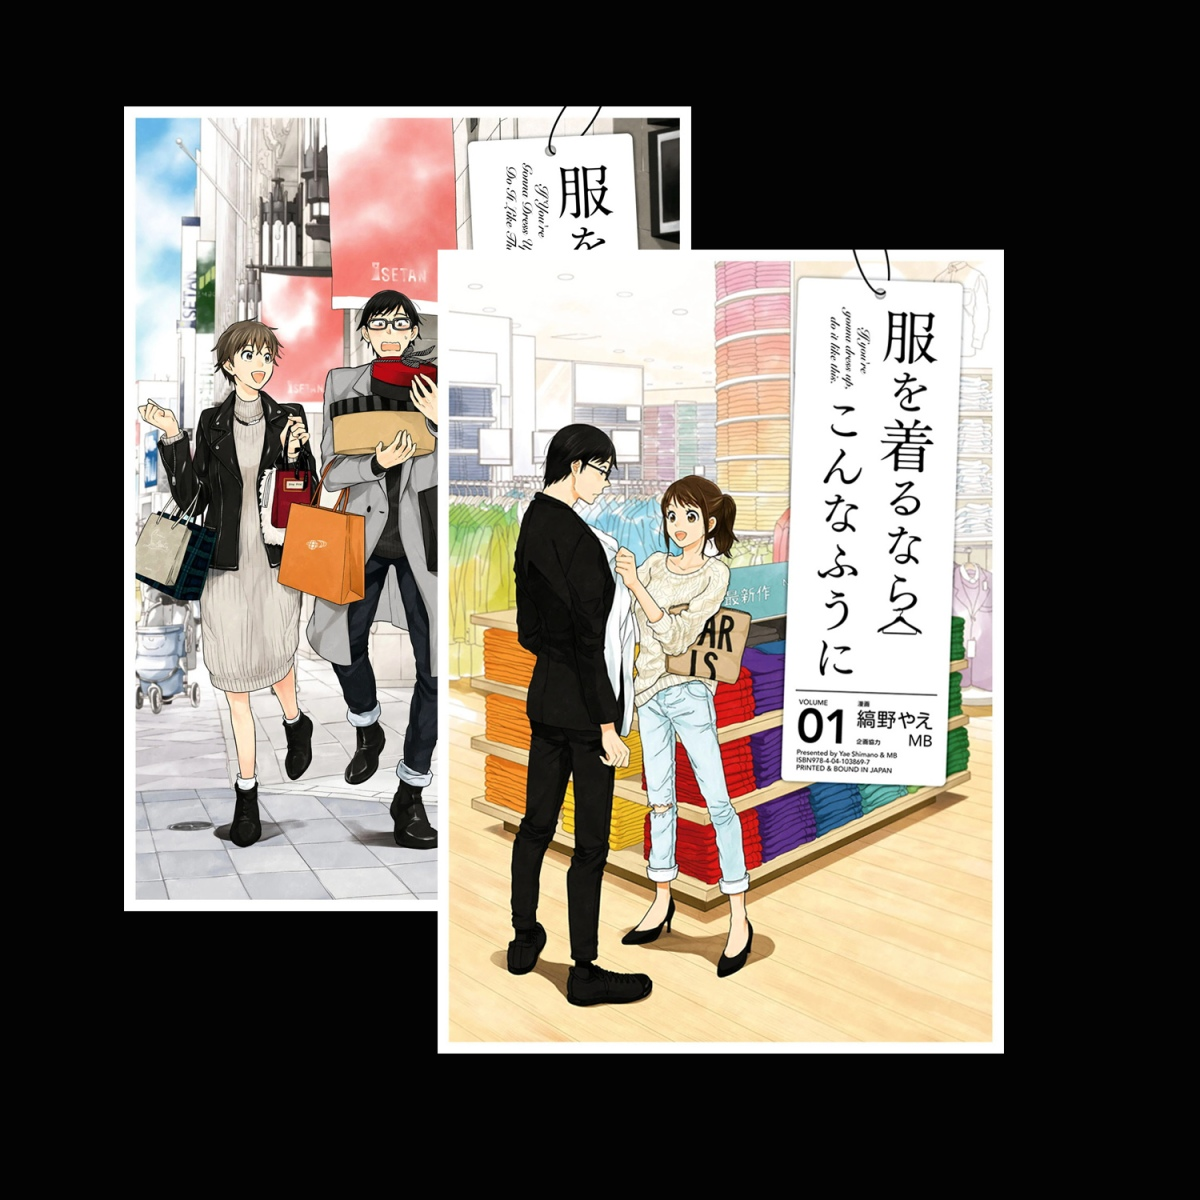 [Review buku] Serba-serbi Fashion Pria di Manga Fuku o Kiru Nara Konna Fuu ni  (If You're Gonna Dress Up, Do It Like This)